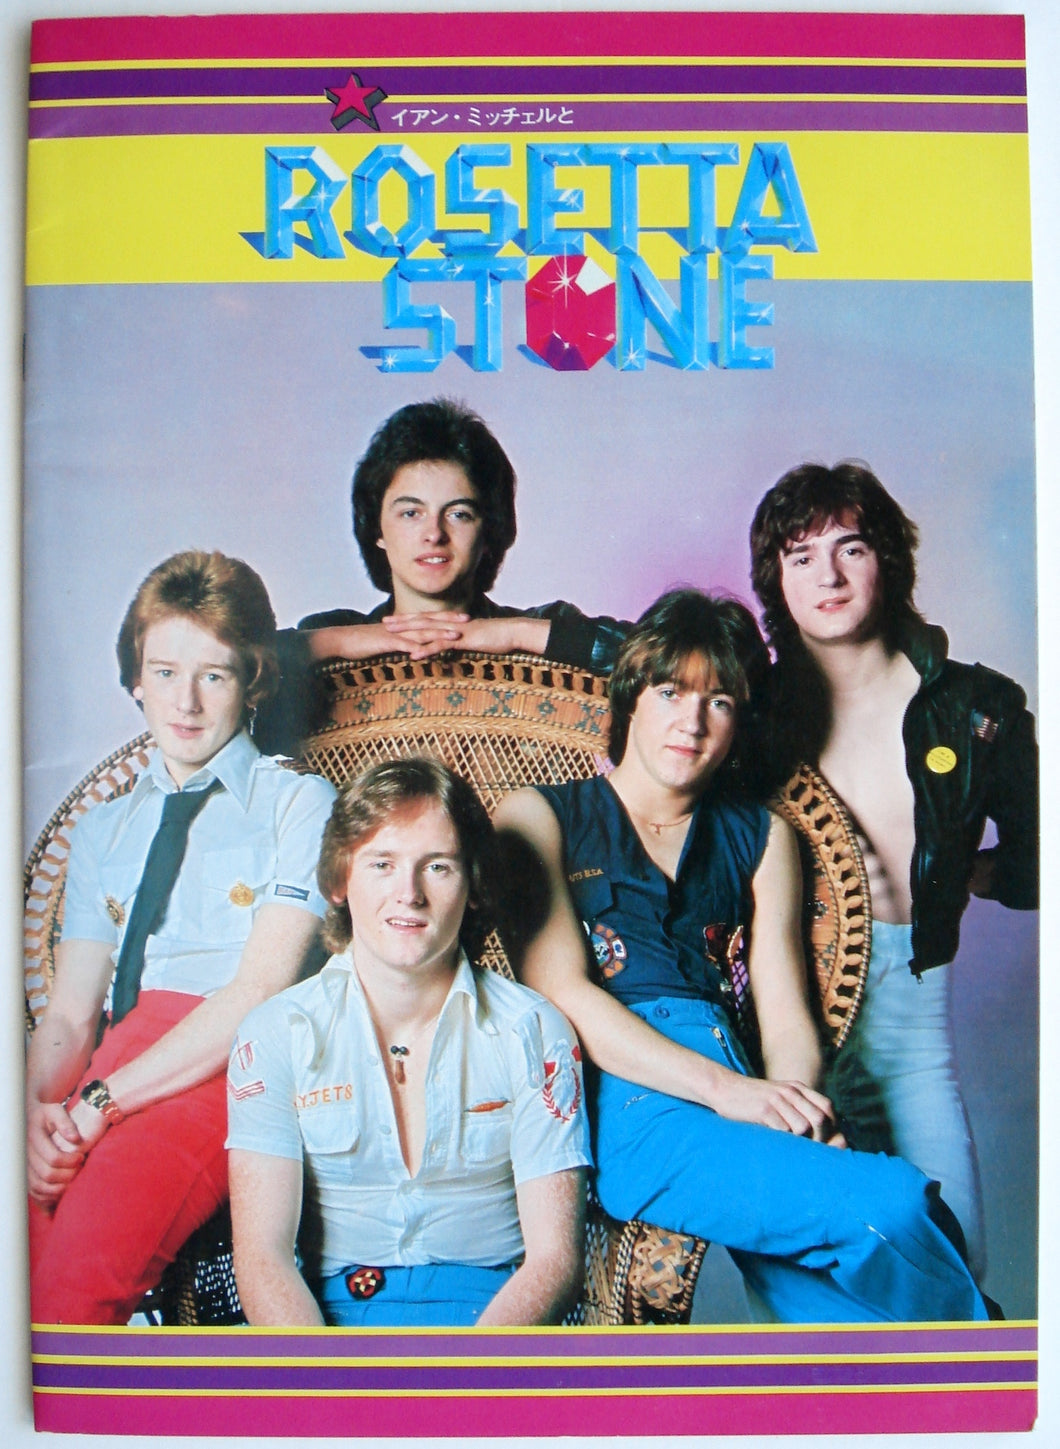 Bay City Rollers (Rosetta Stone) - 1978